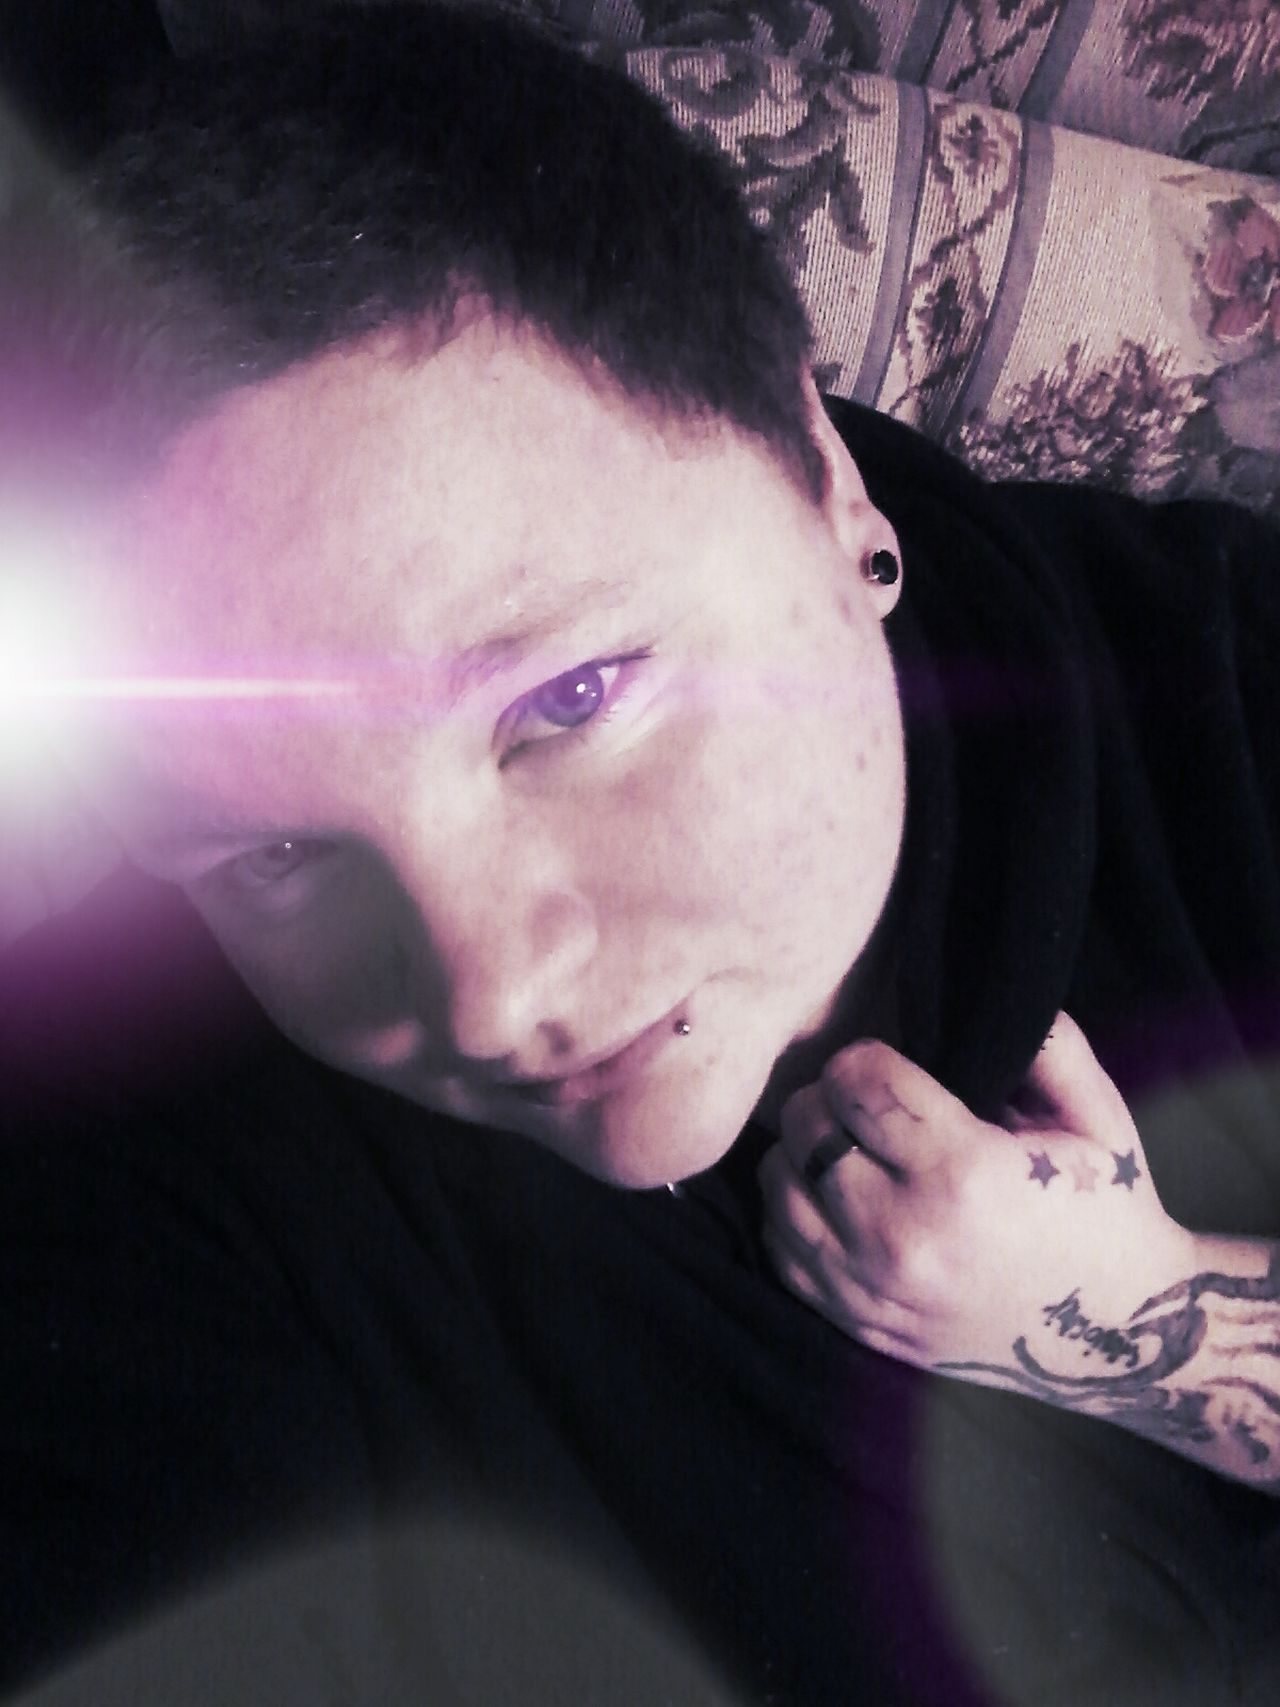 Clutch Genderfluid GenderEquality Pierced One Person Young Adult Adults Only Adult Tattooed Love Without Boundaries Stud Darkside Stud Status  Stud Life Looking At Camera Exceptional Photographs Model Dark Photography Deeper Meaning Lookcloser Holdingon Staymyself Stay Strong